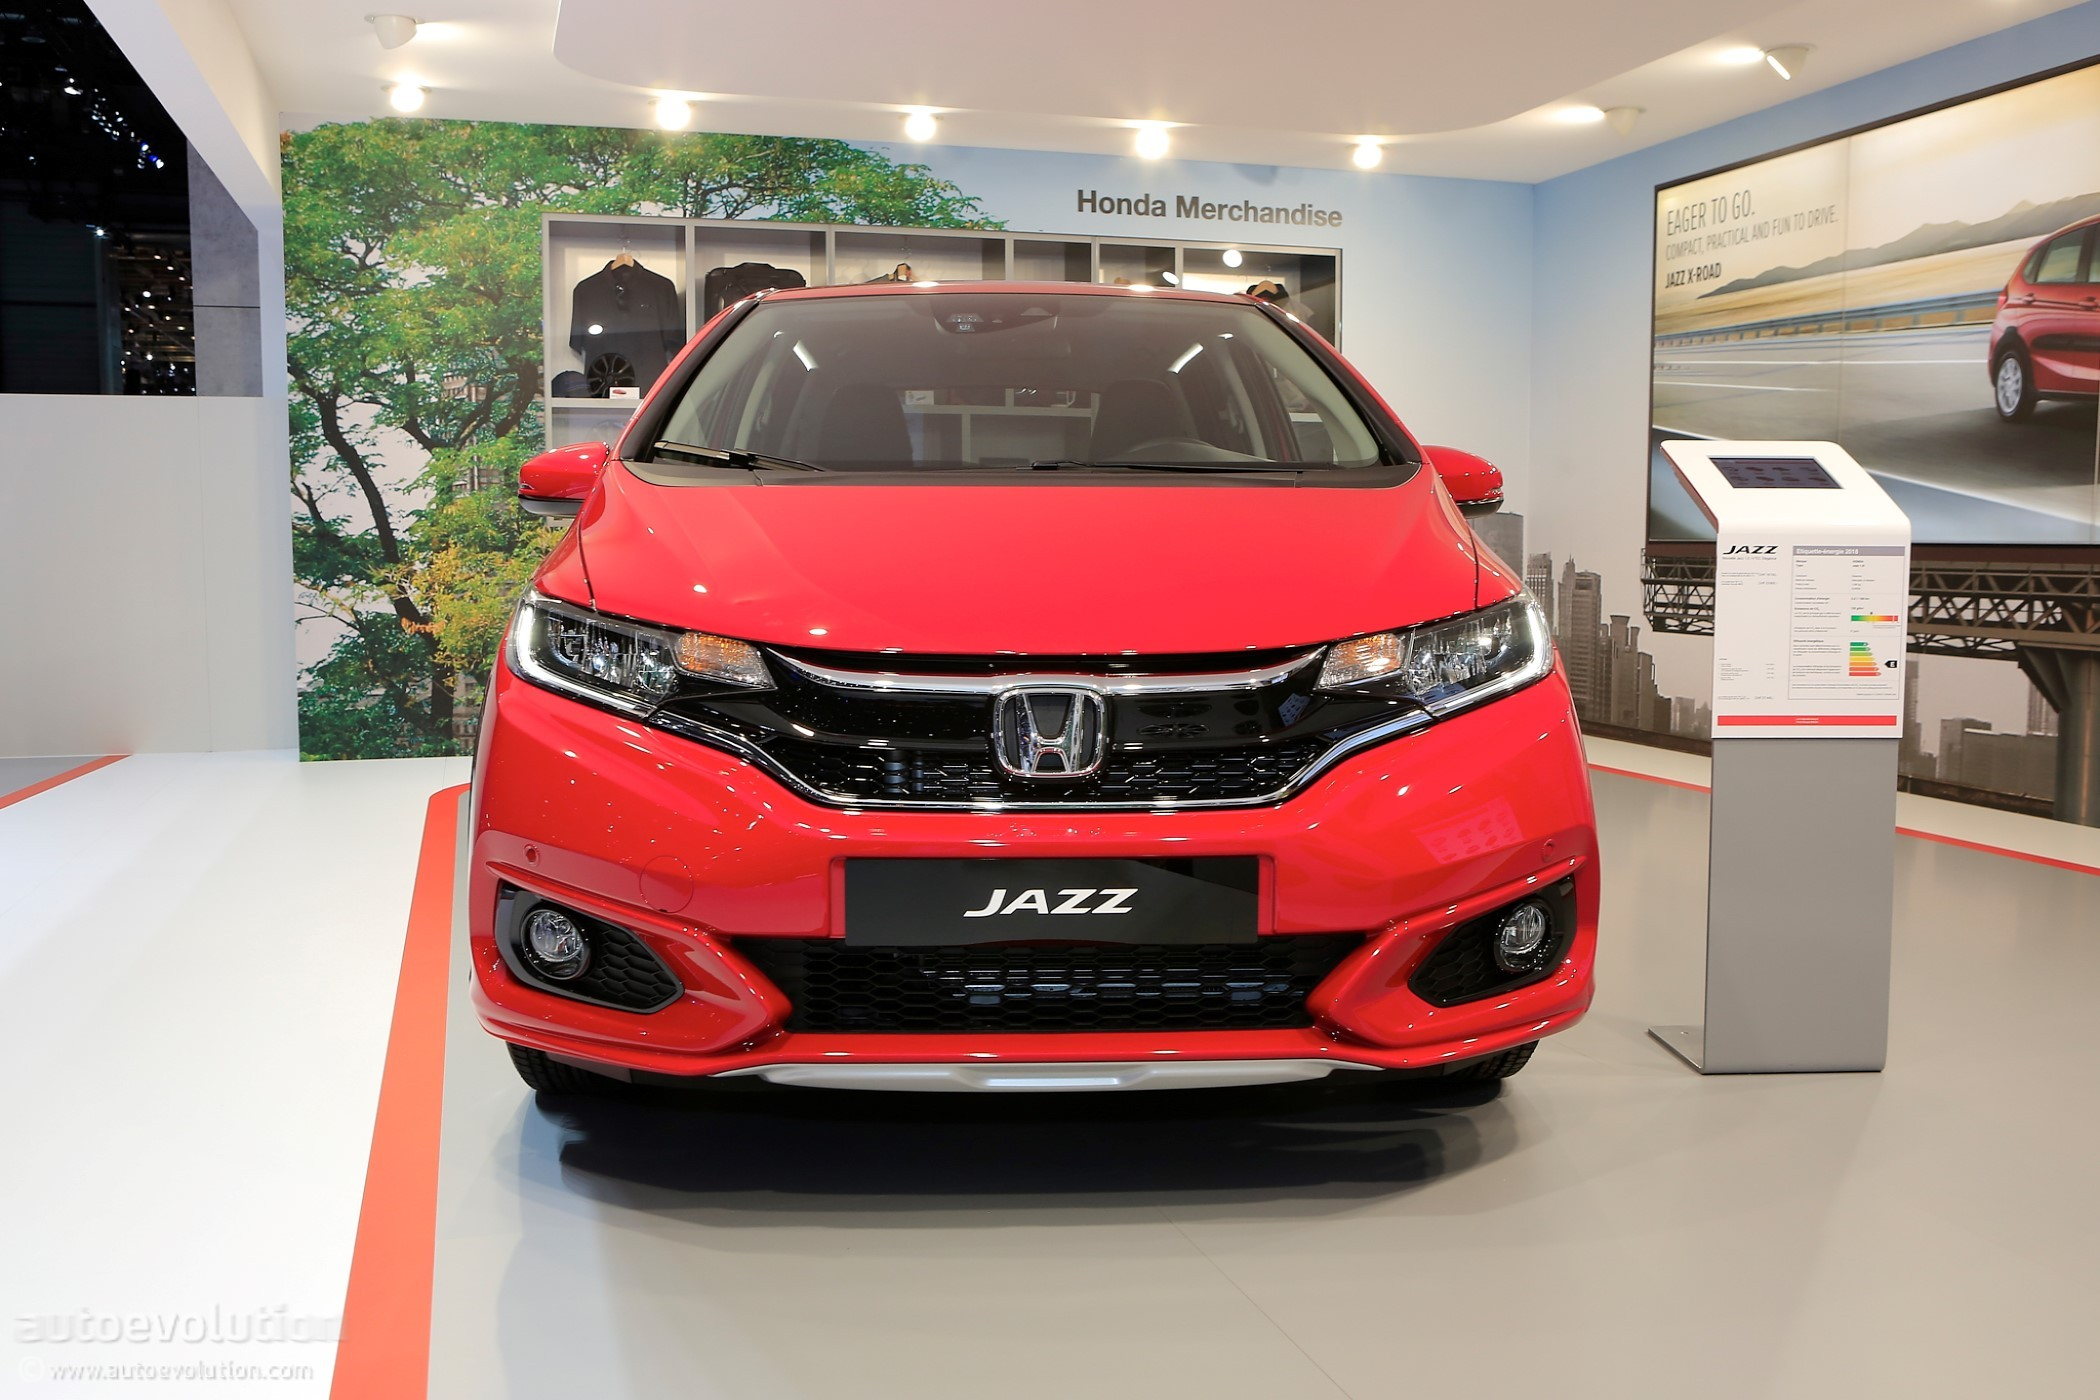 2018 Honda Jazz Gets Its Rather Disappointing X Road Suit